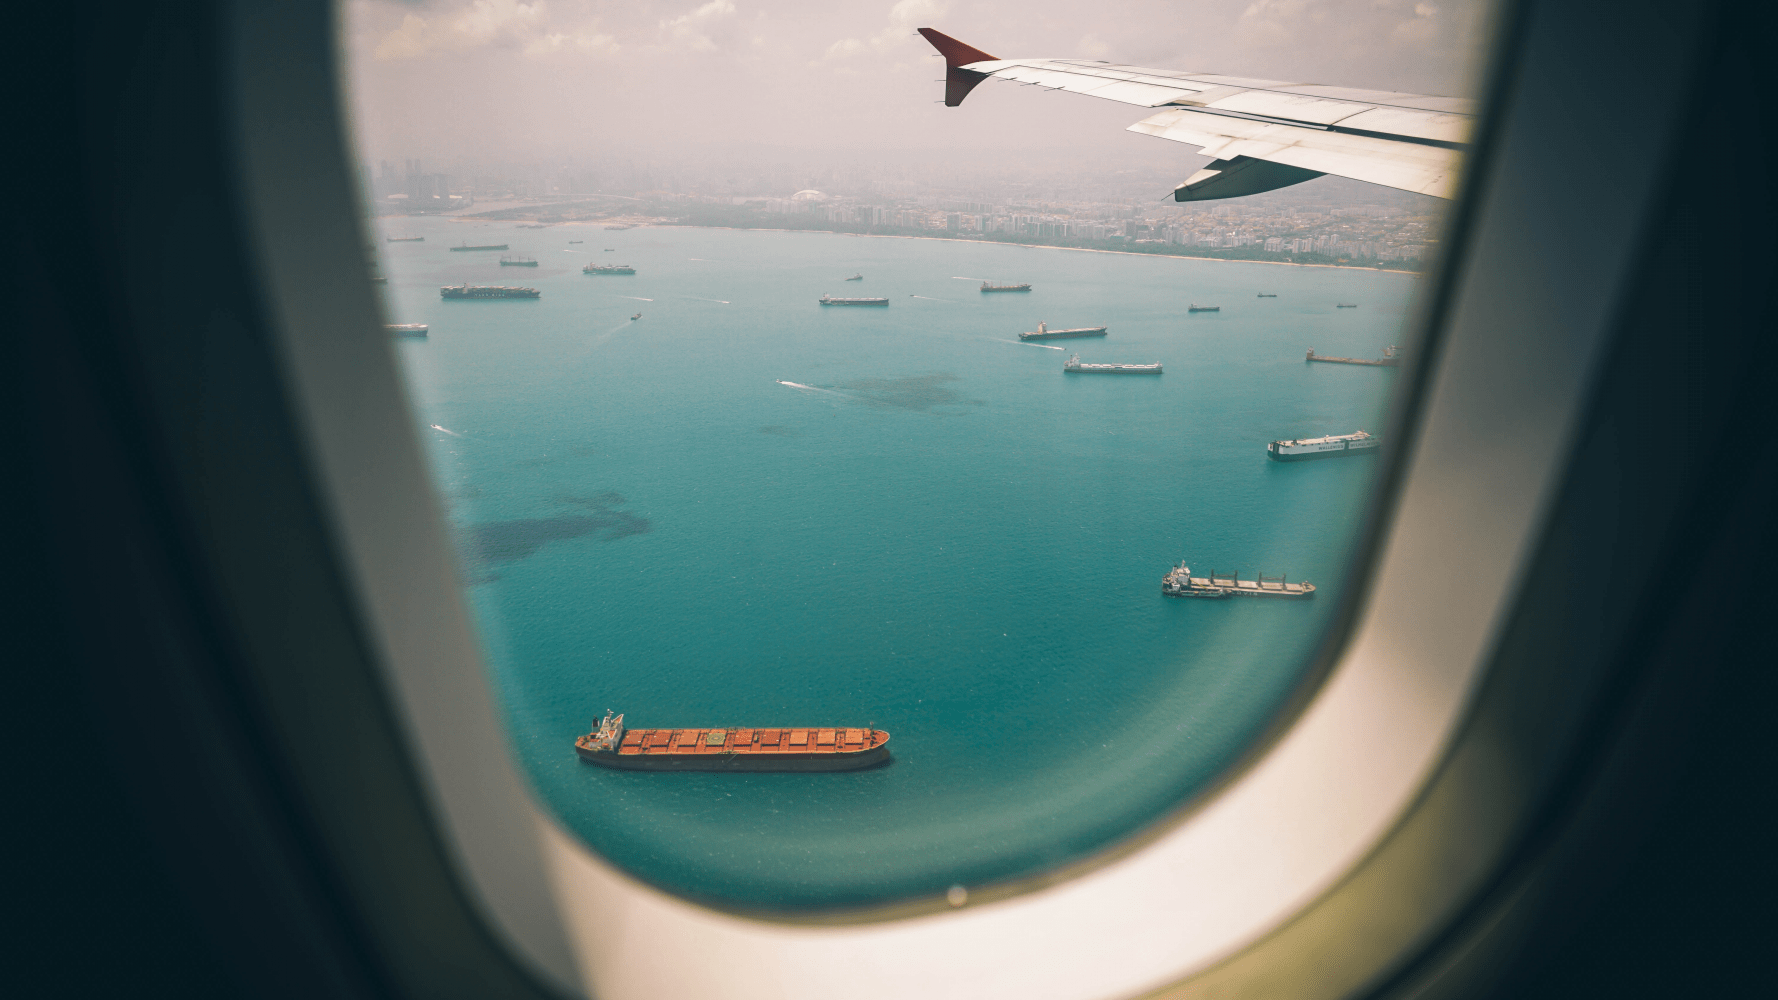 View from the passenger window of a commercial jet overlooking a busy harbor and large container ships